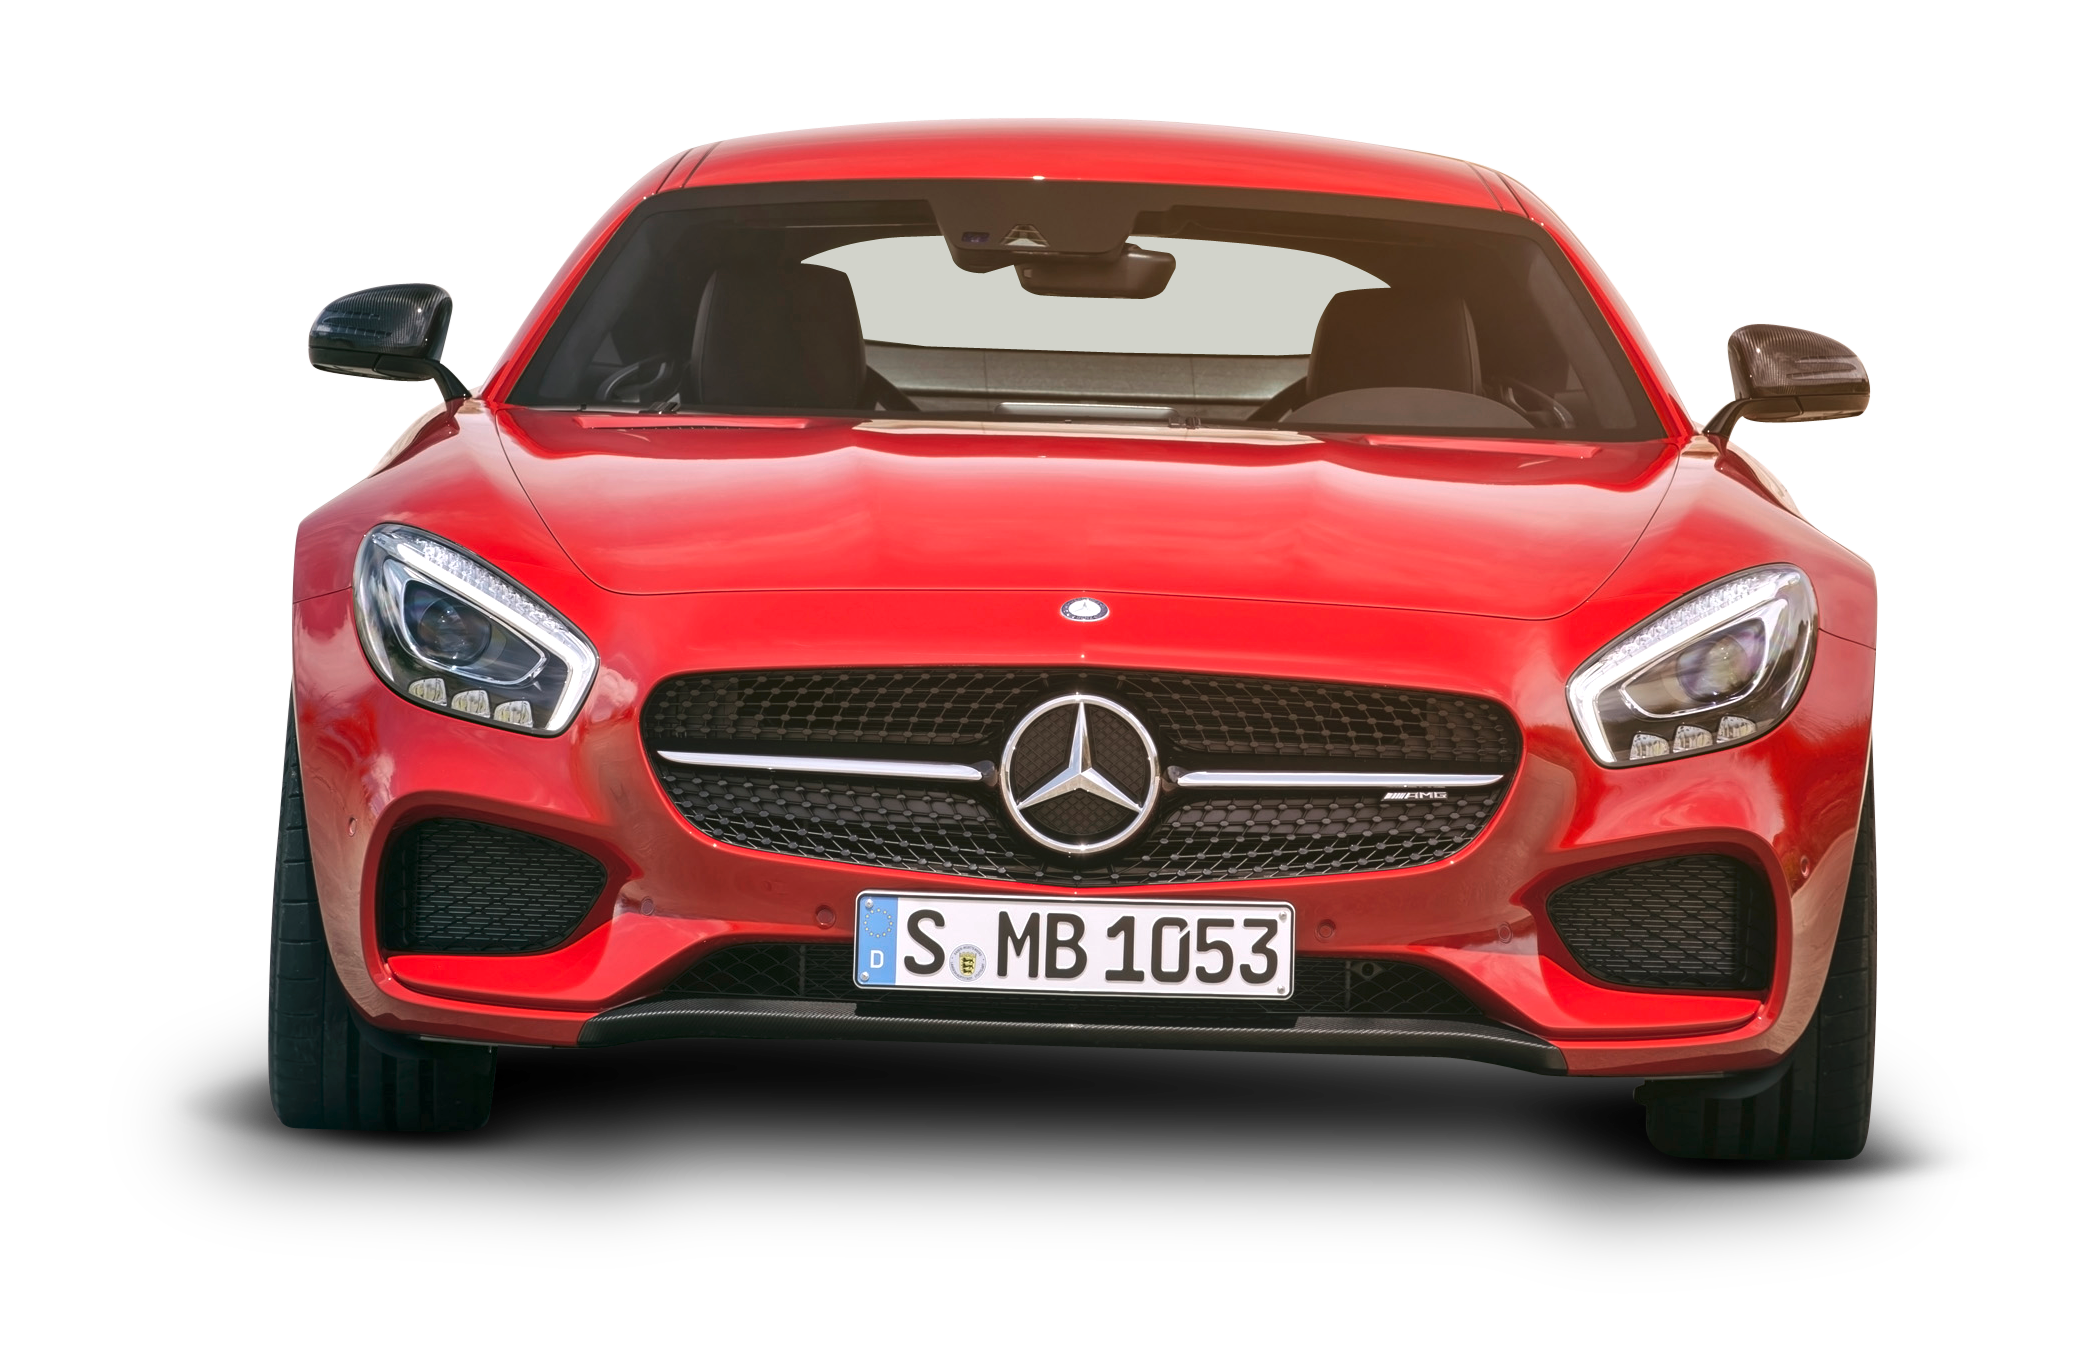 Mercedes Amg Gt Red Car Front Png Image Purepng Free Transparent